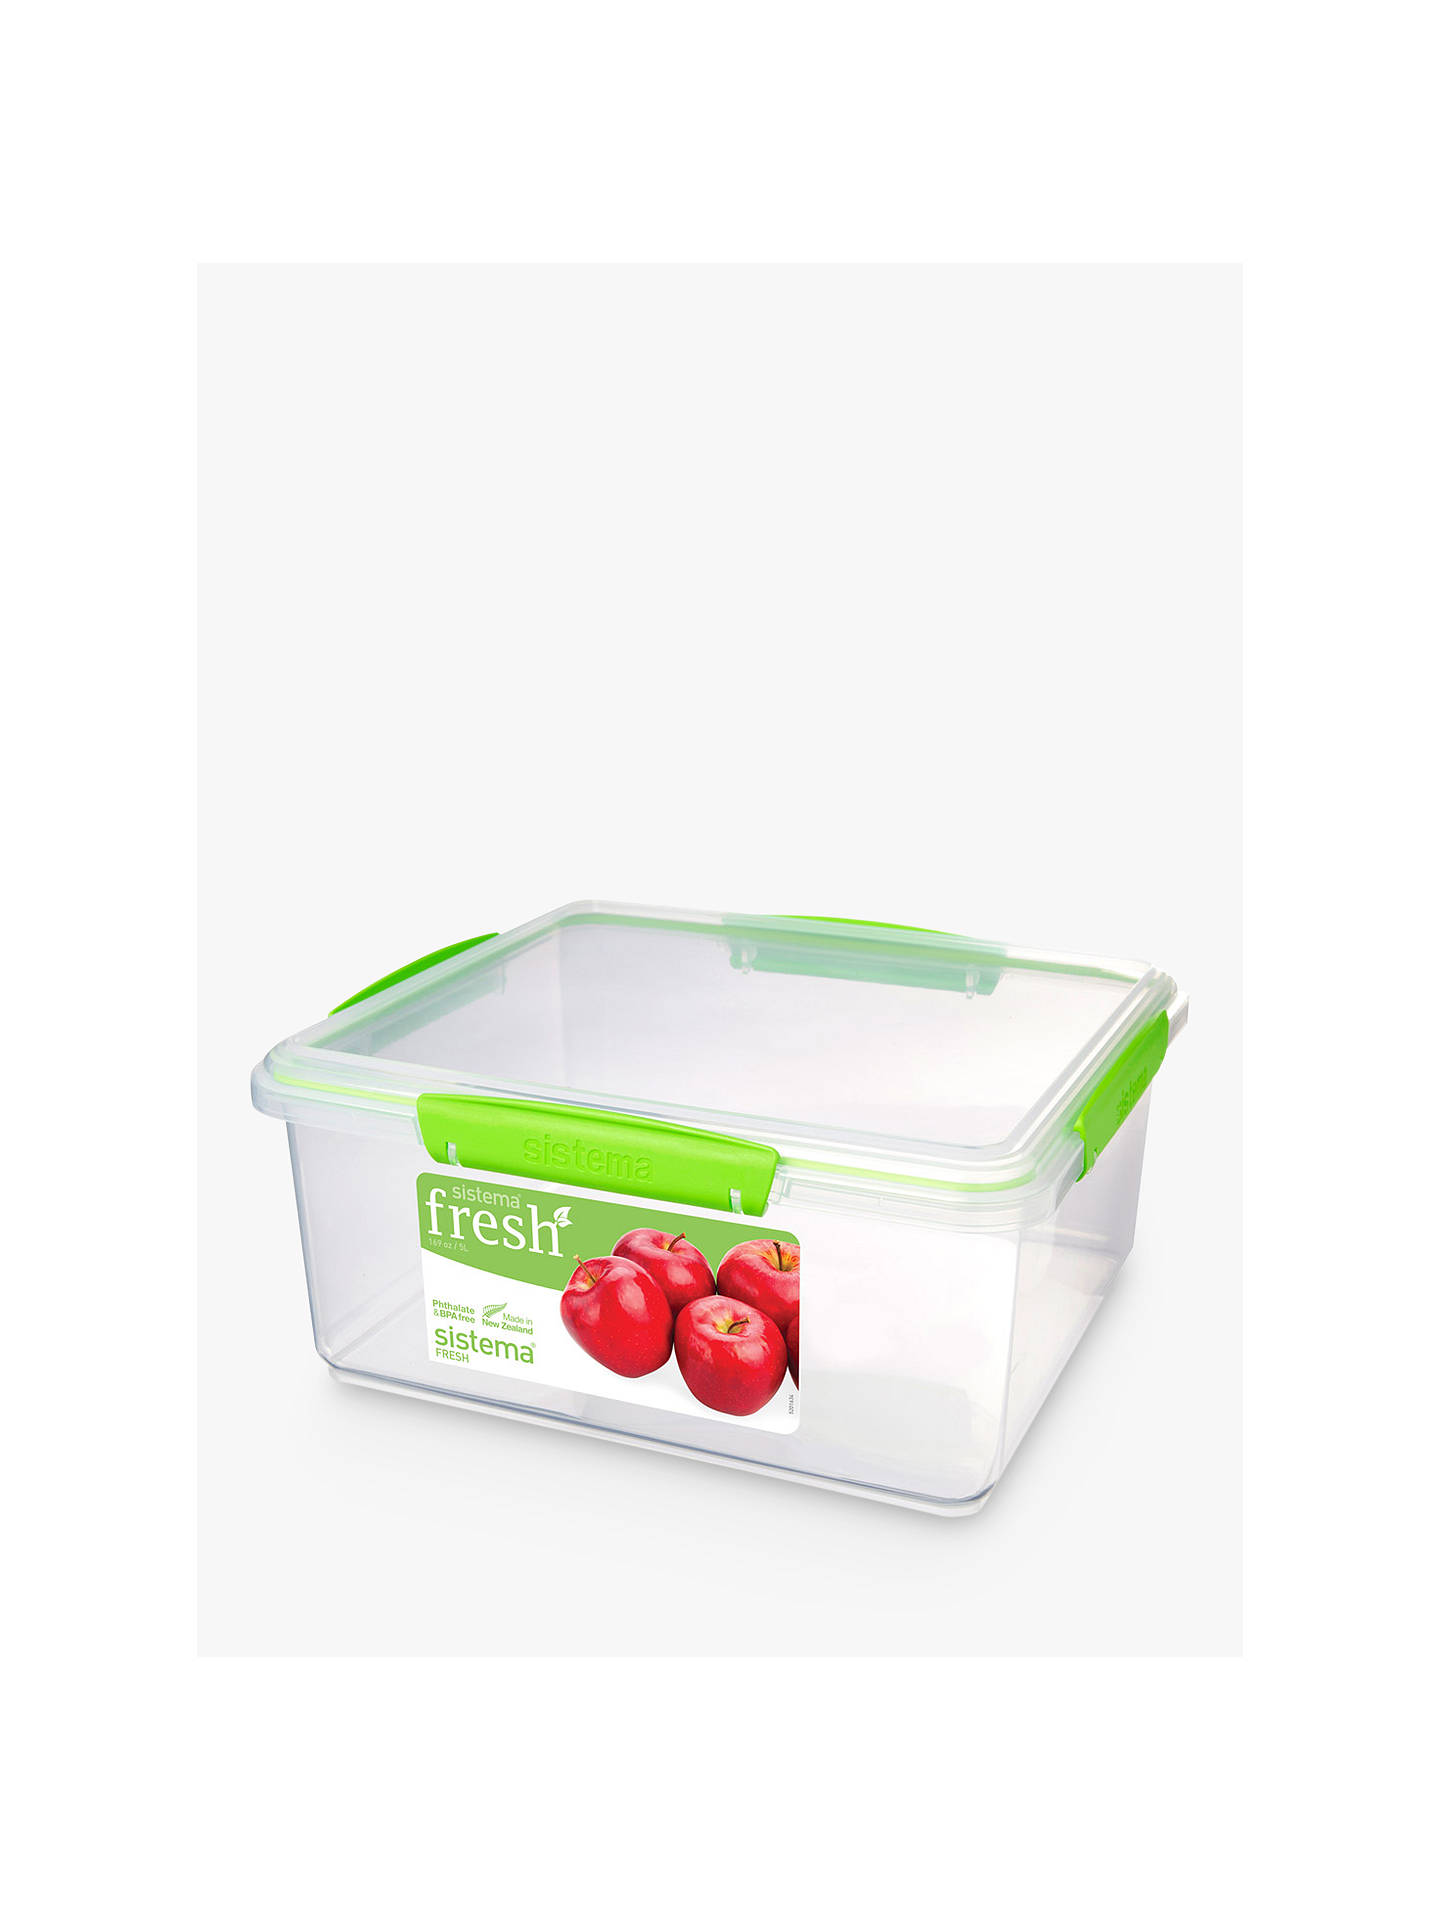 BuySistema Fresh Rectangular Storage Container, 5L Online at johnlewis.com